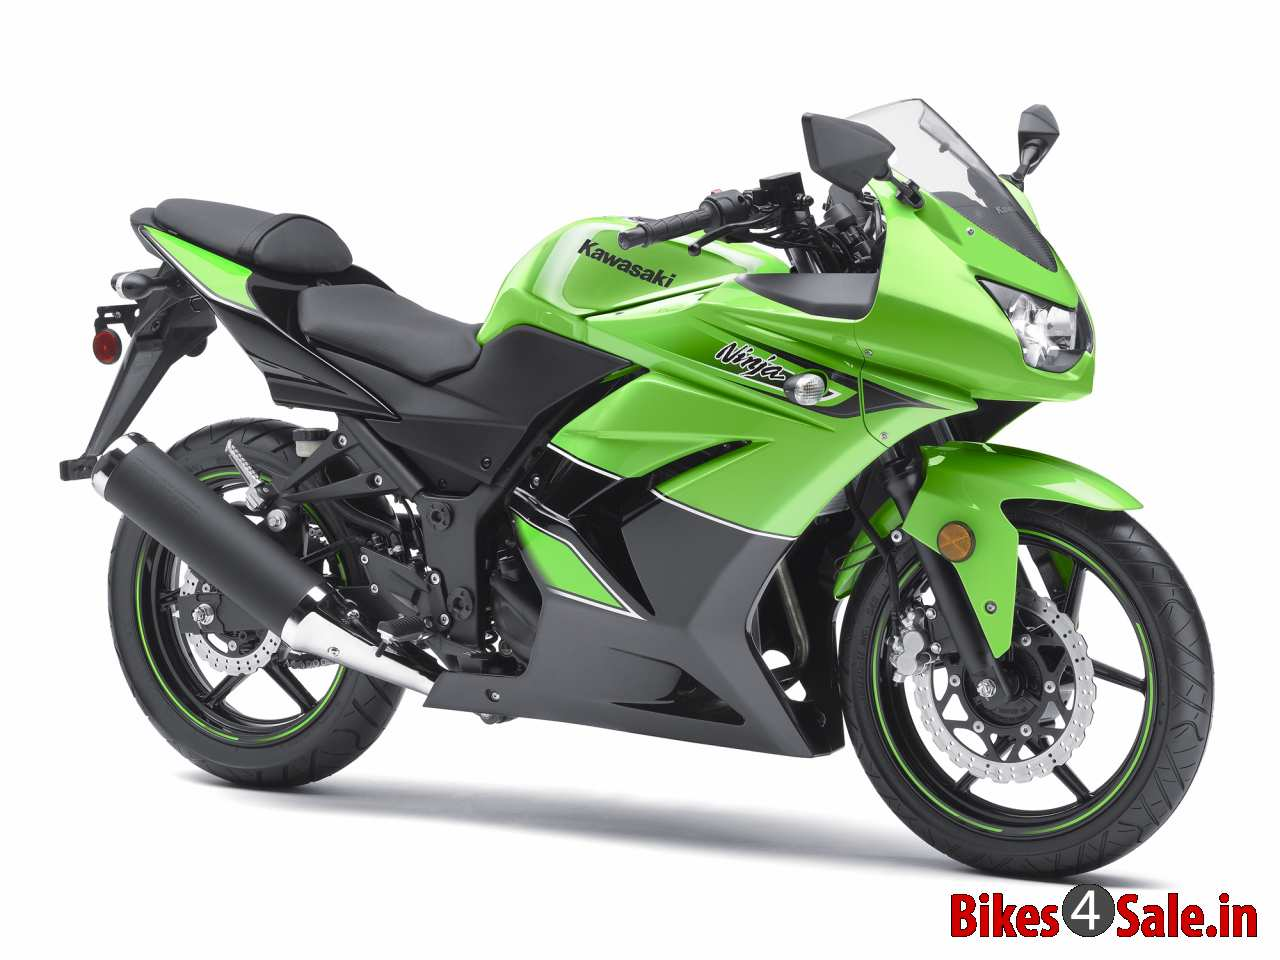 Kawasaki Ninja 250R price, specs, mileage, colours, photos ...